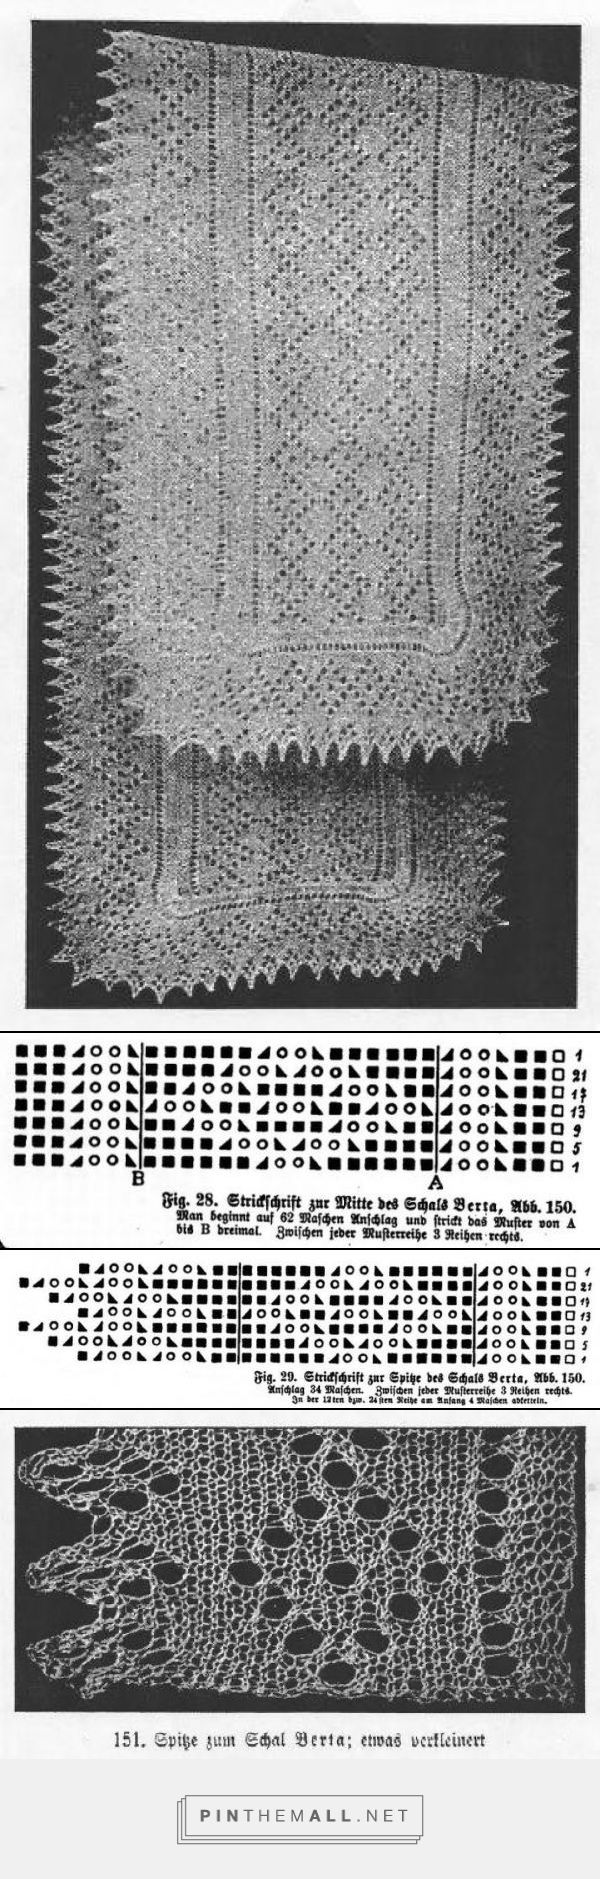 """Schal Berta"" from an antique lace knitting book by Marie Niedner"